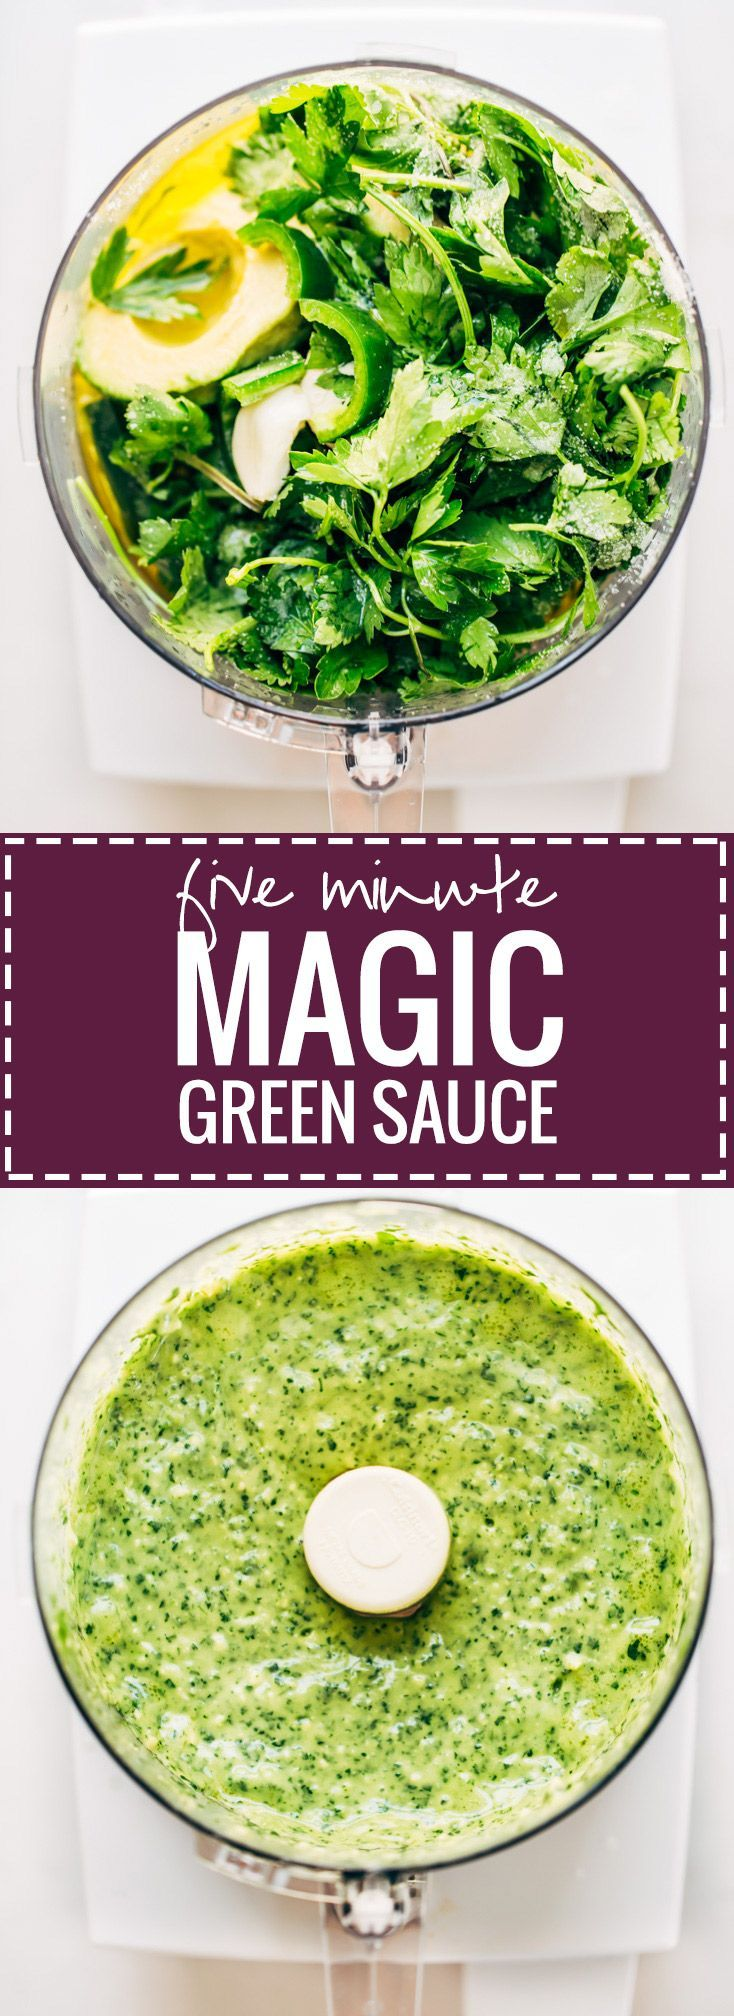 5 Minute Magic Green Sauce - use on salads, with chicken, or just as a dip. Easy ingredients like parsley, cilantro, avocado, garlic, and lime. Vegan.